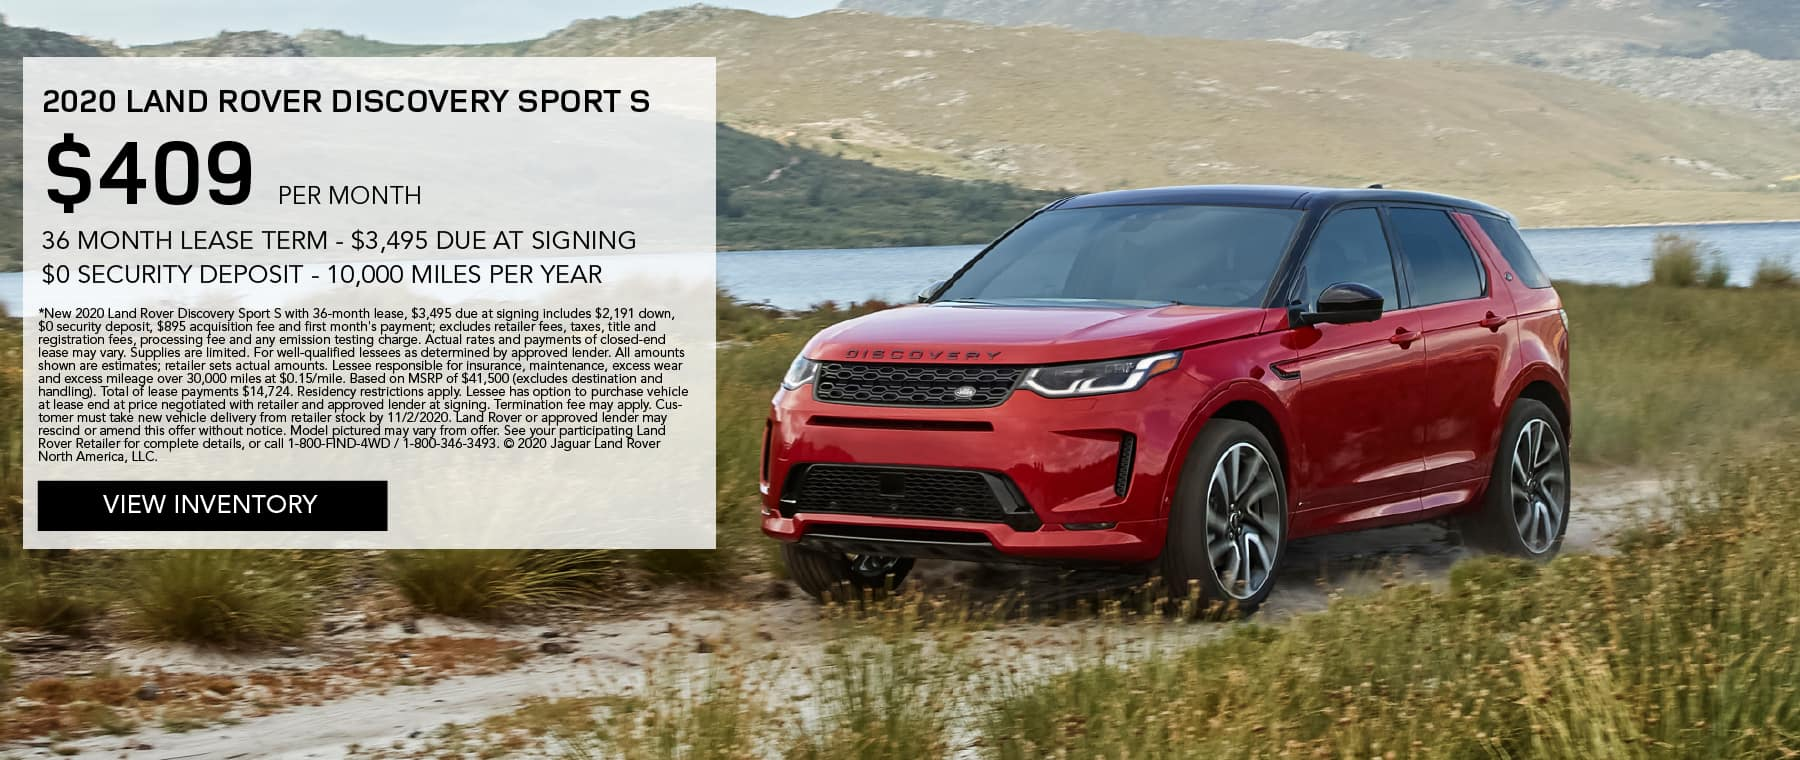 2020 LAND ROVER DISCOVERY SPORT S. $409 PER MONTH. 36 MONTH LEASE TERM. $3,495 CASH DUE AT SIGNING. $0 SECURITY DEPOSIT. 10,000 MILES PER YEAR. EXCLUDES RETAILER FEES, TAXES, TITLE AND REGISTRATION FEES, PROCESSING FEE AND ANY EMISSION TESTING CHARGE. ENDS 11/2/2020. VIEW INVENTORY. RED DISCOVERY SPORT PARKED ON DIRT ROAD BY LAKE.